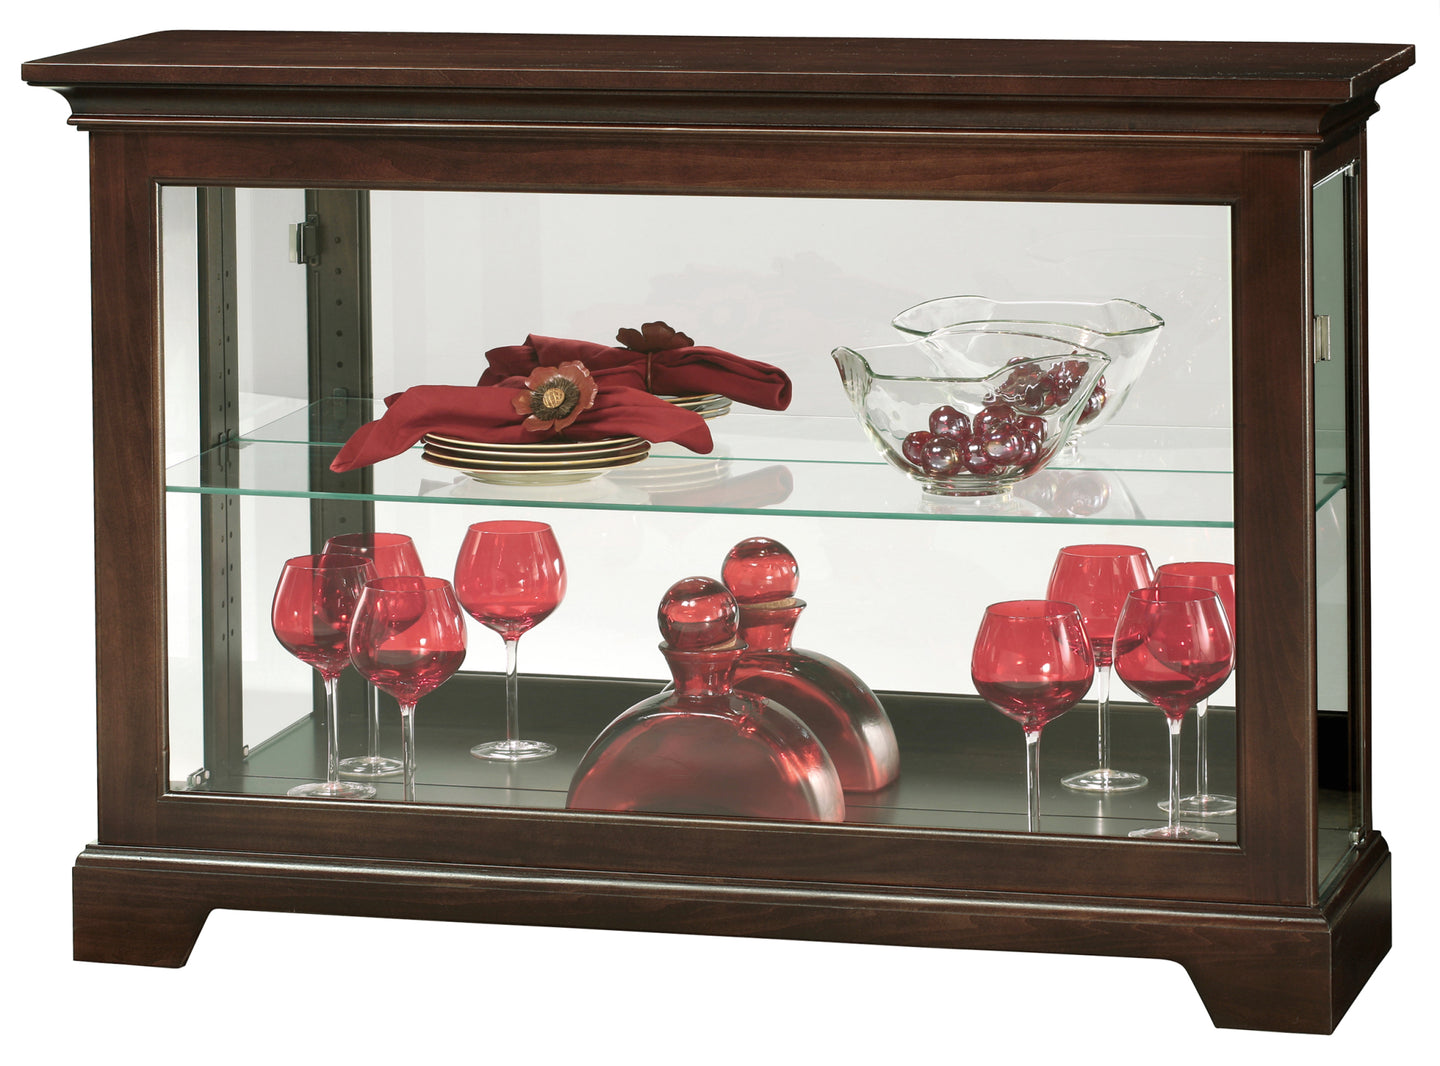 Howard Miller Underhill III Curio Console Cabinet 680596 - Curios And More